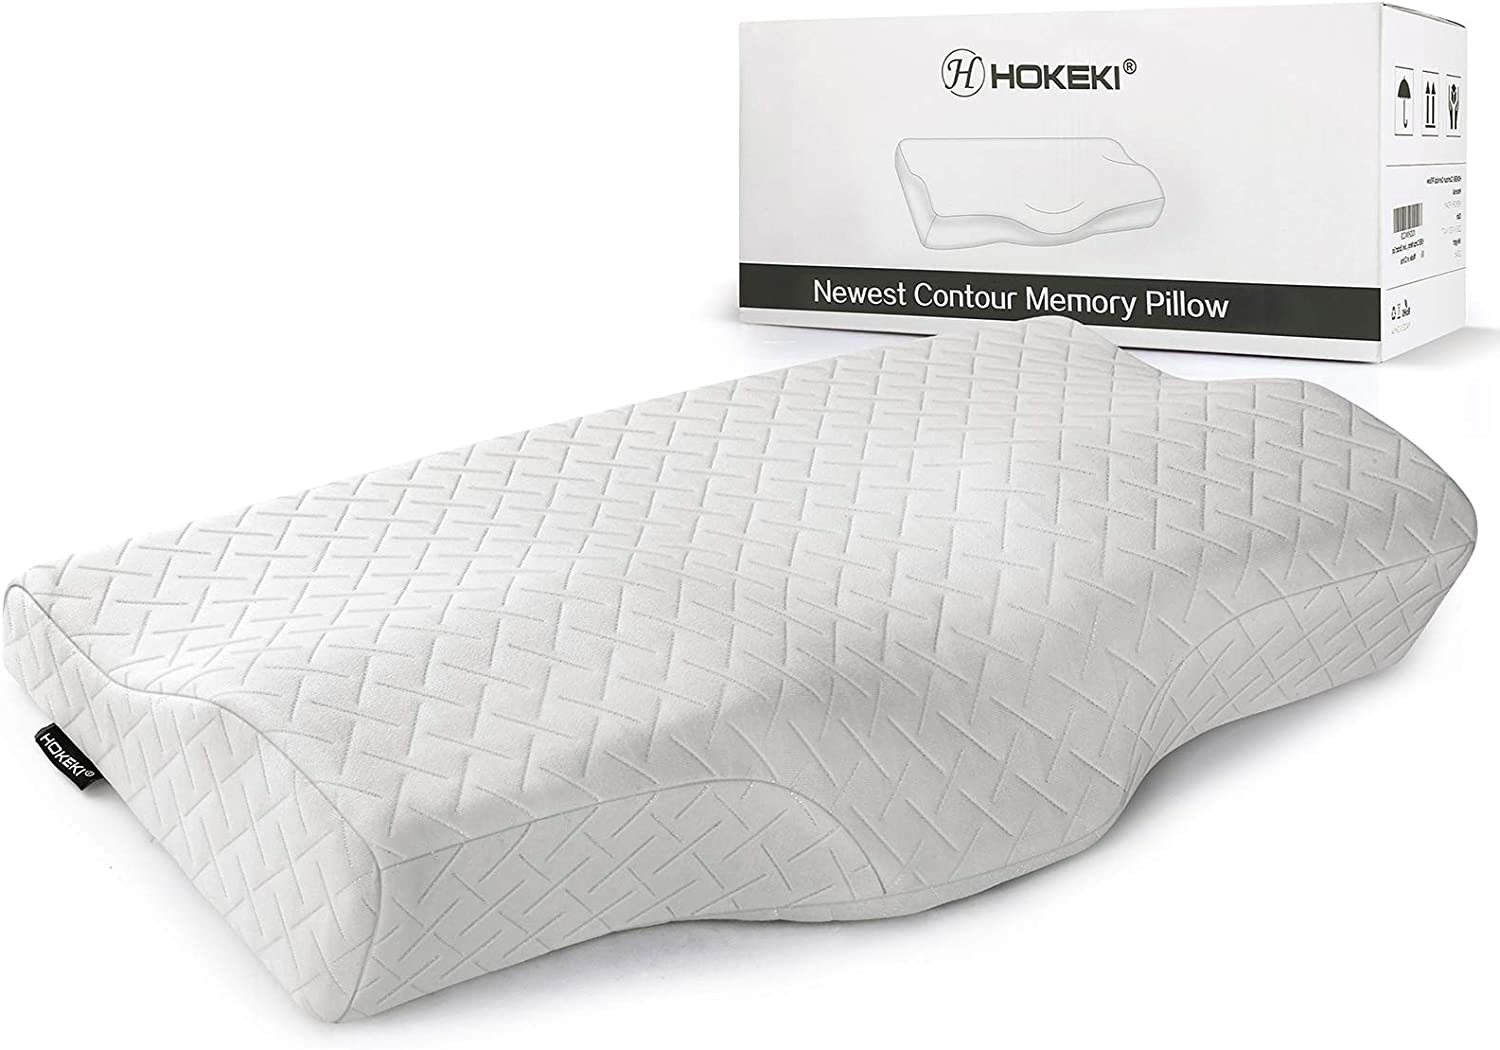 HOKEKI Contour Memory Foam Pillow Neck Pain Support, Neck Pillows for Pain Relief Sleeping, Ergonomic Cervical Pillow, Sutera Sleep Orthopedic Pillow with Pillowcase for Side, Back, Stomach Sleepers